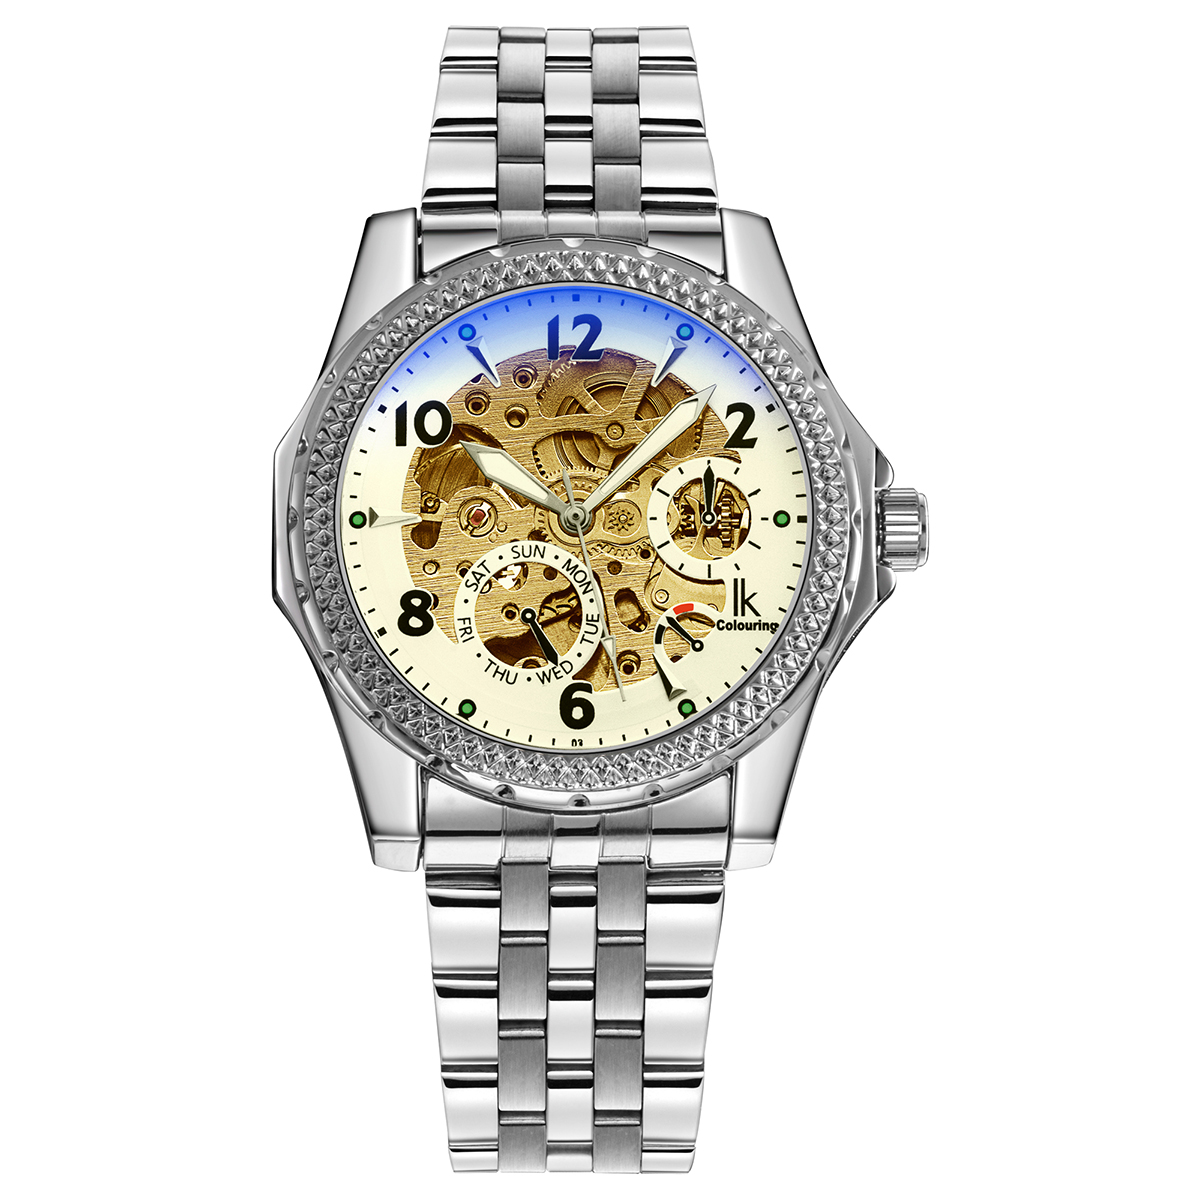 IK Colouring New Automatic Mechanical Men Watches Decorative Small Dials Luminous Pointer Hollow Stainless Steel Mens Wristwatch ik colouring automatic mechanical watch decorative small dials luminous pointer hollow back case stainless steel men wristwatch